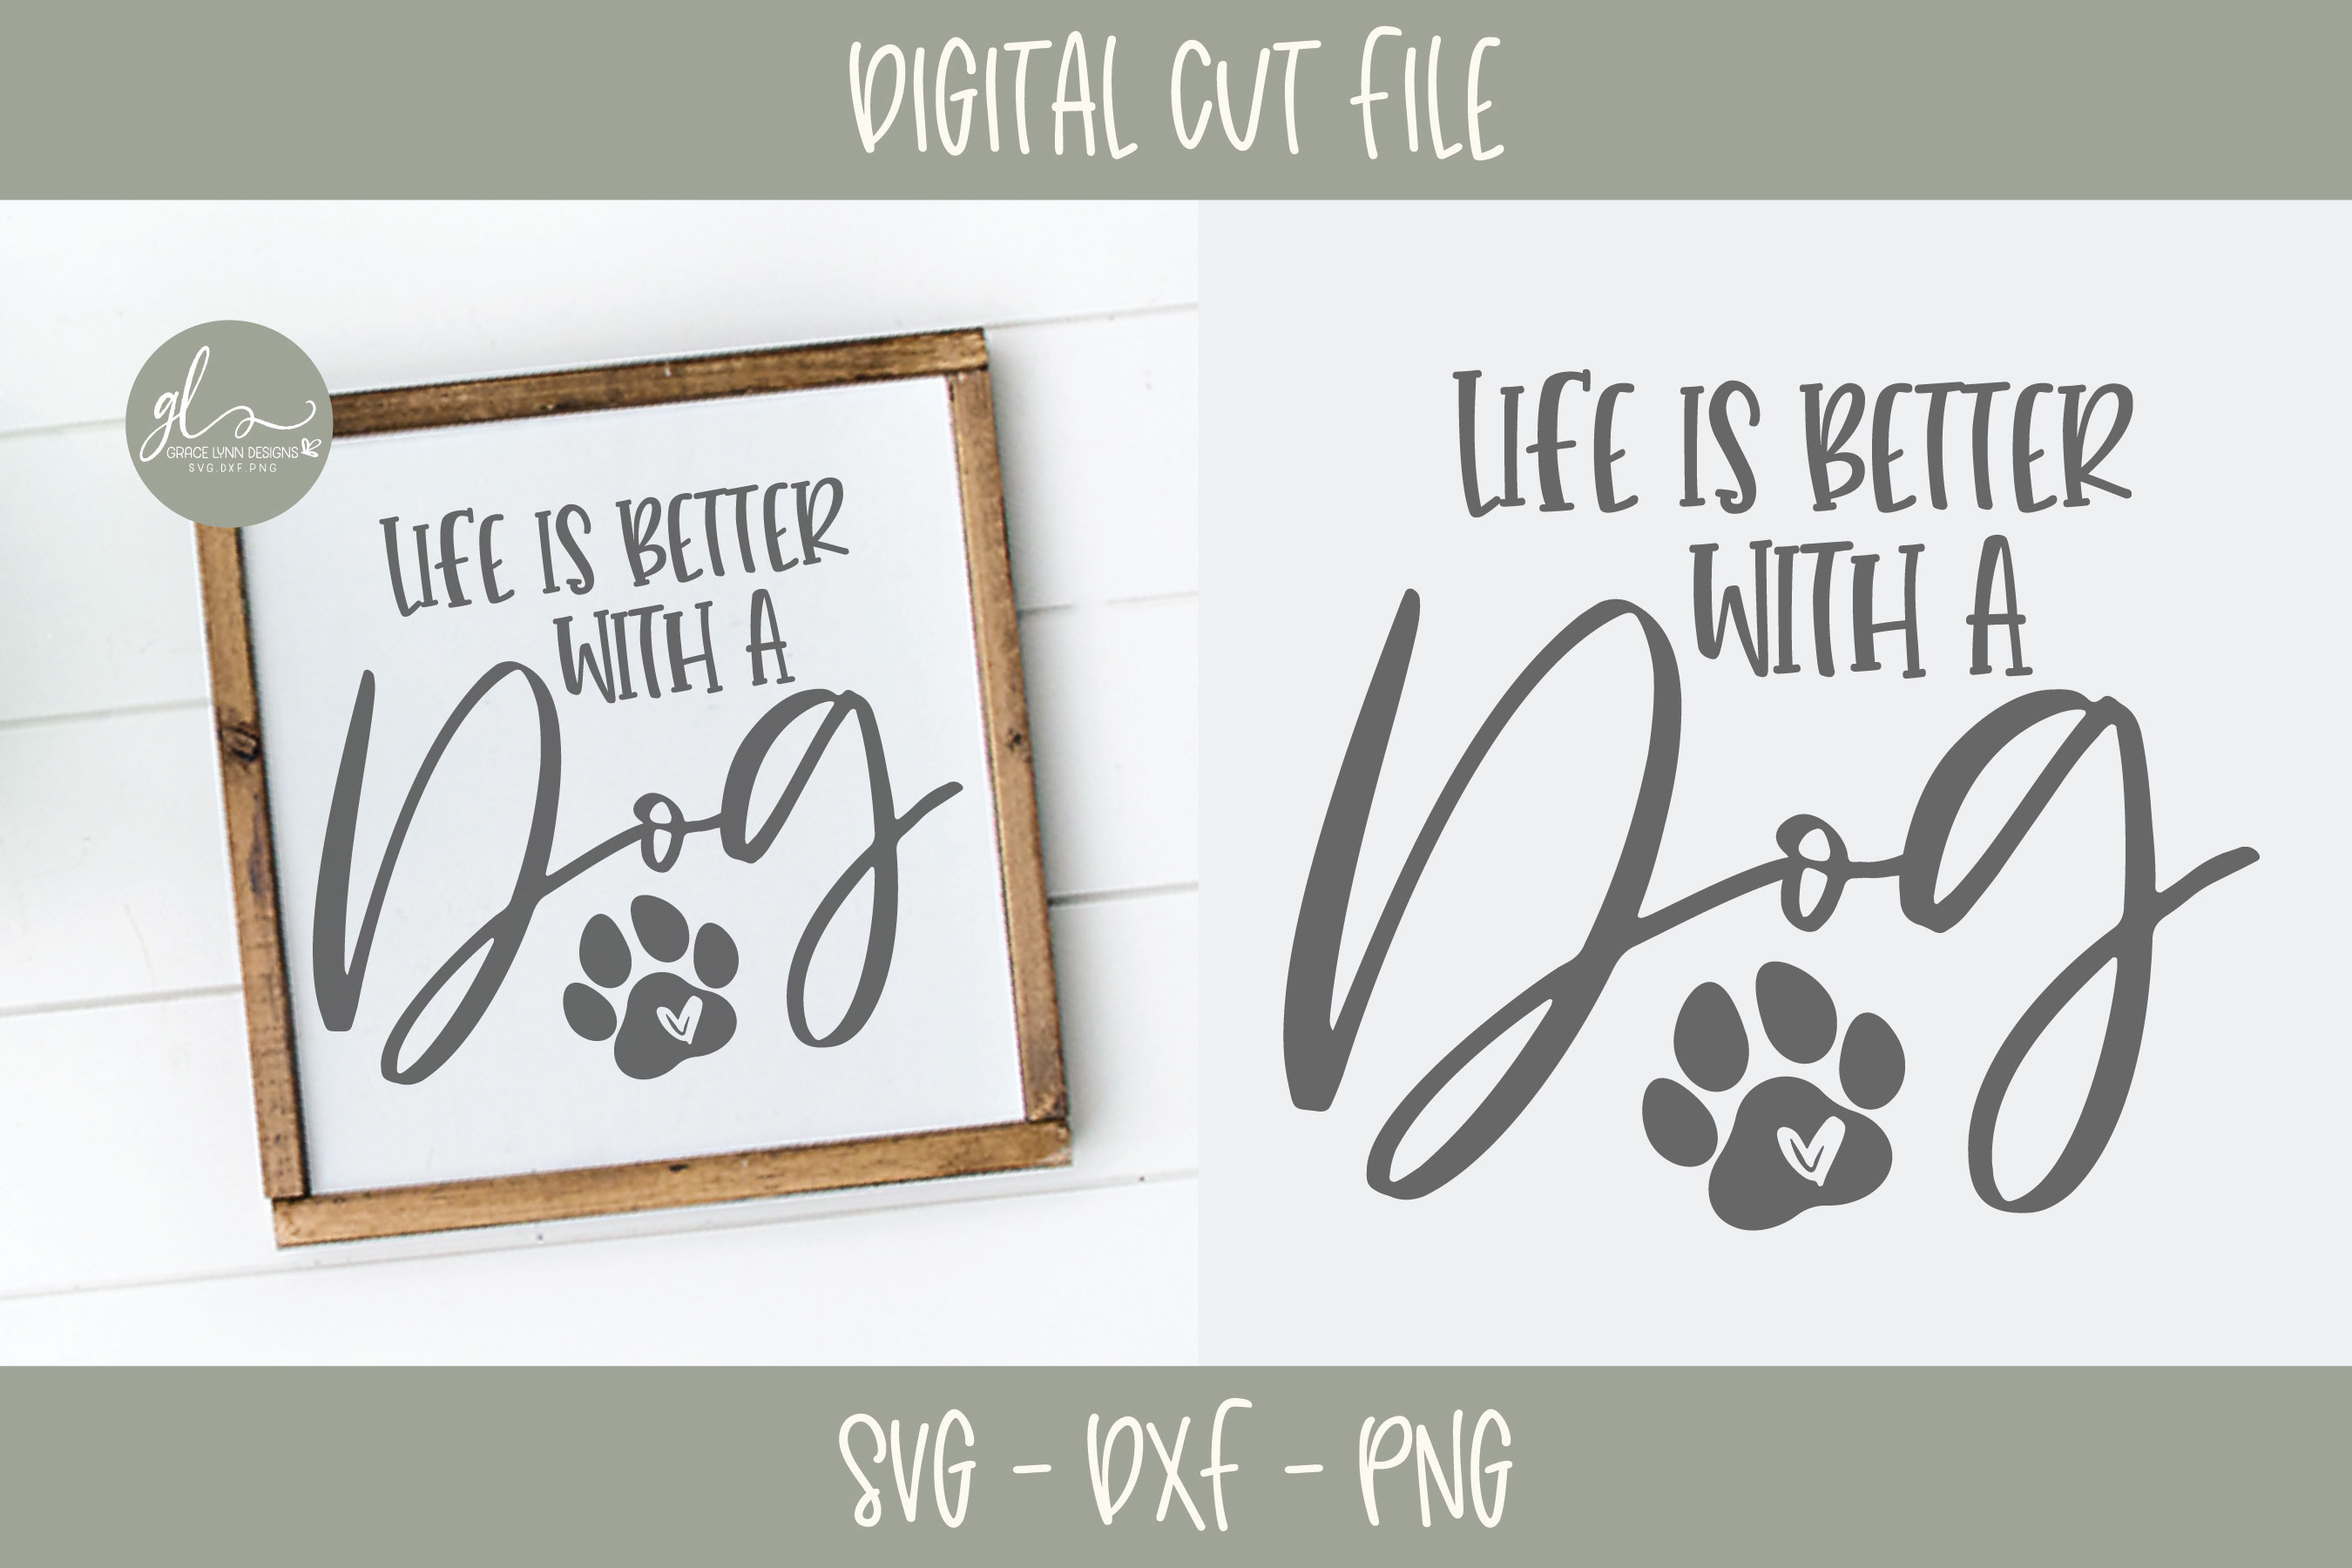 Life Is Better With A Dog - SVG example image 1